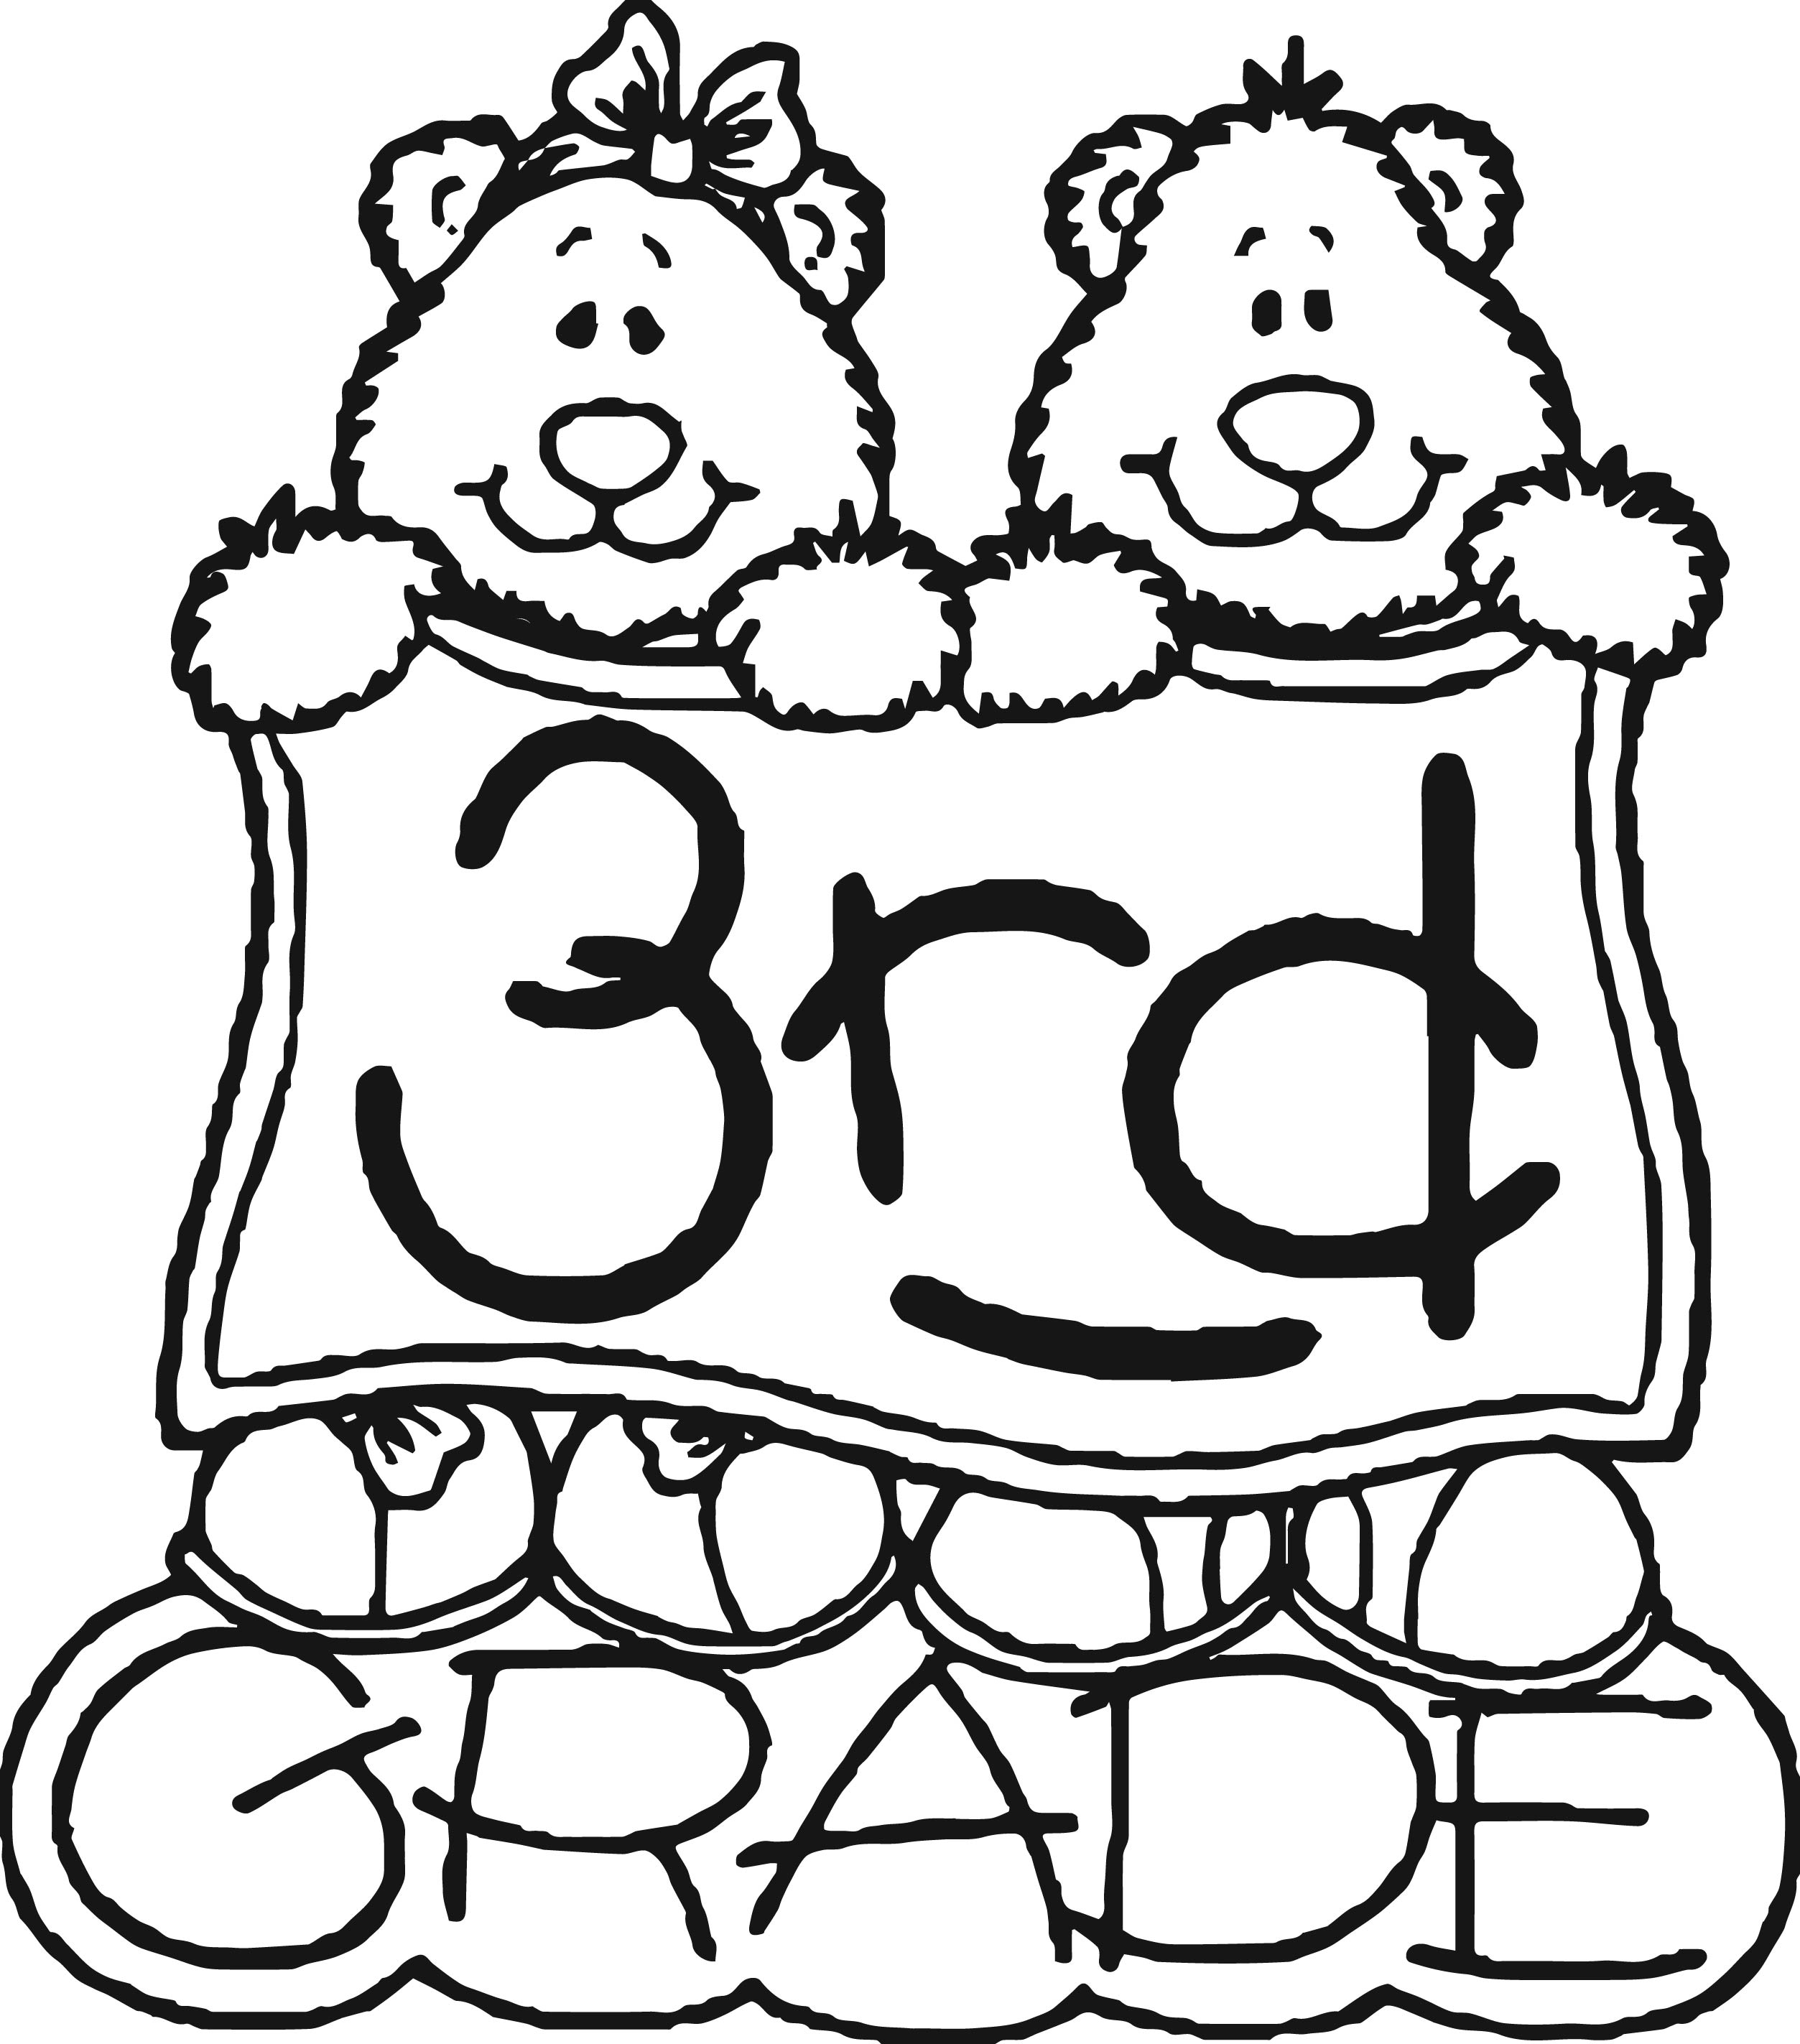 printable coloring pages for grade 4 4th grade coloring pages free download best 4th grade printable 4 for grade coloring pages